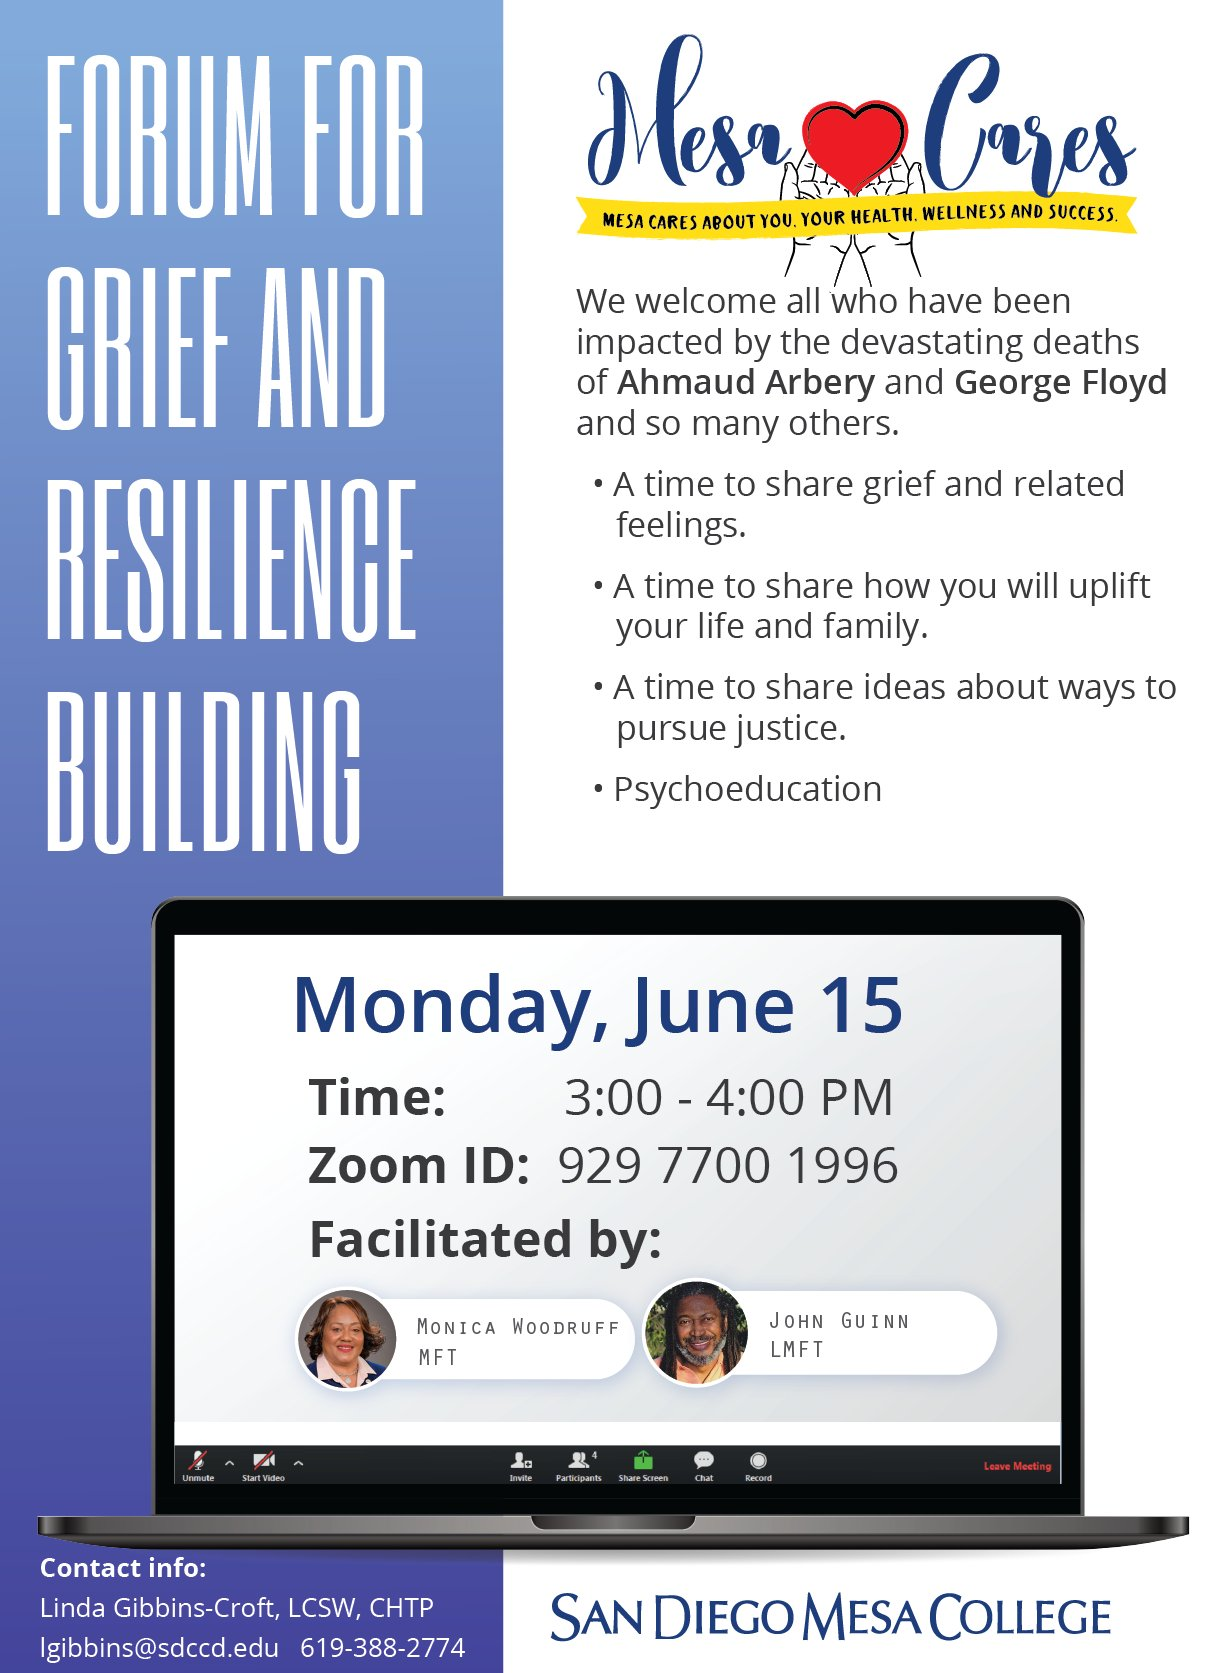 Forum for Grief and Resilience Building